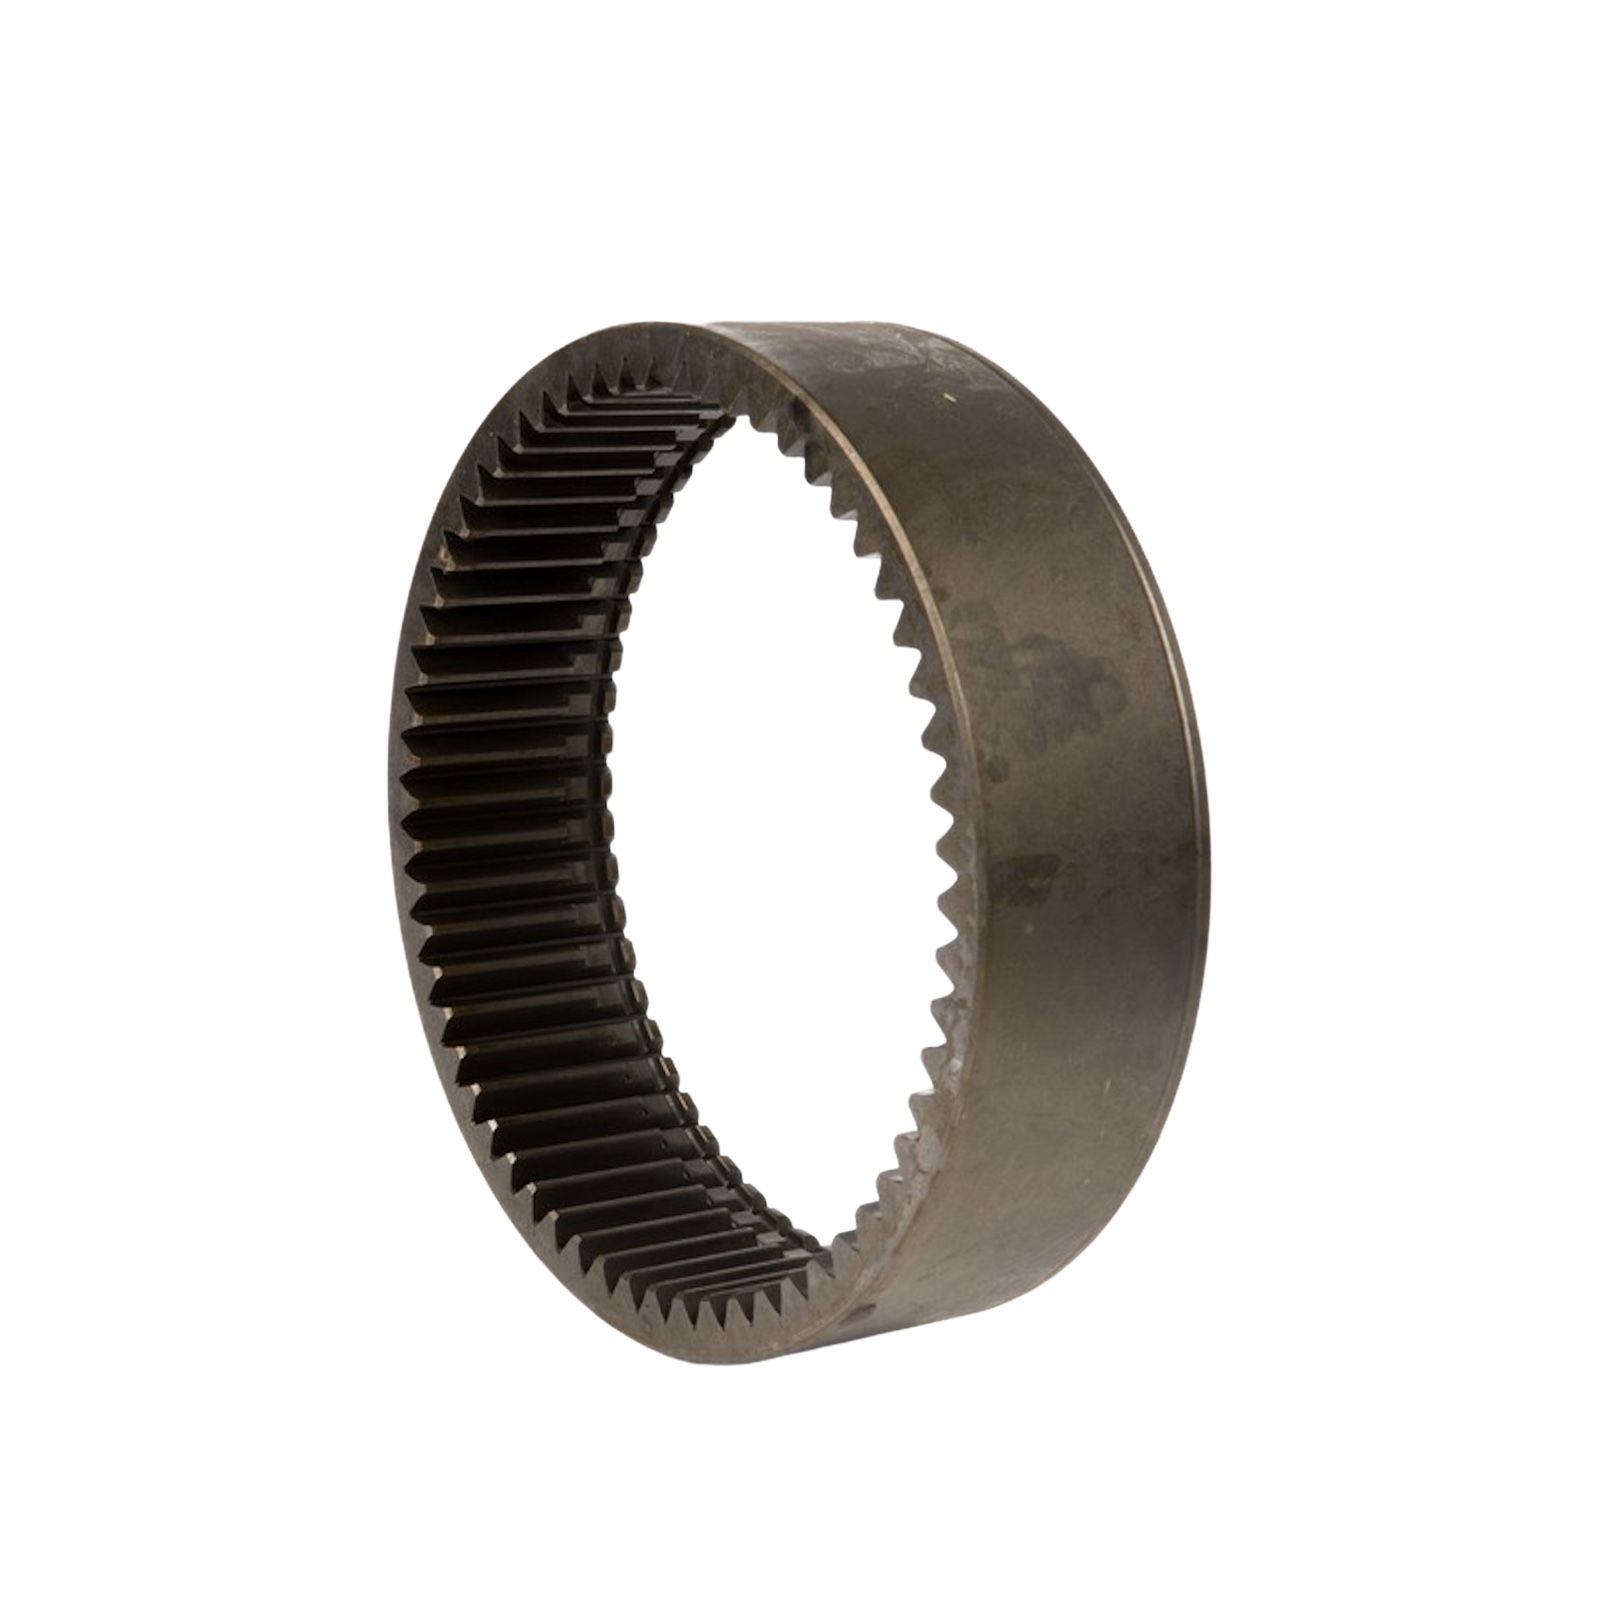 Gear Annulus Ring